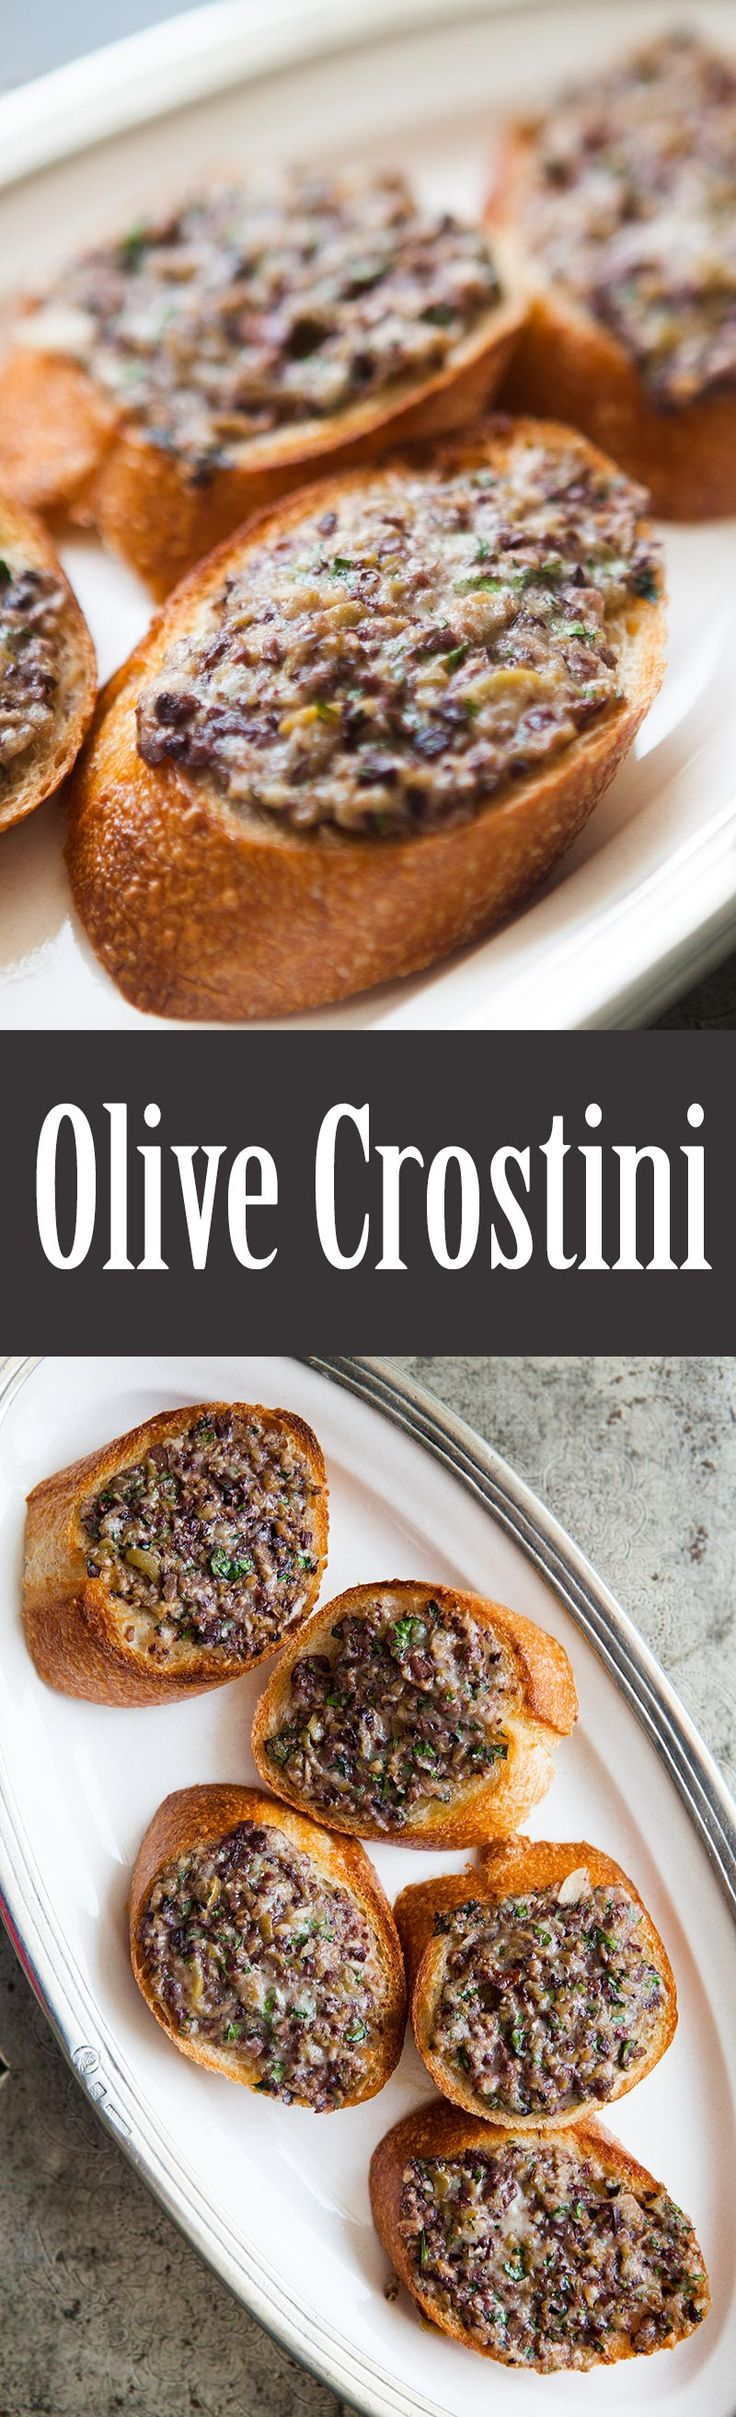 Olive Crostini ~ Olive crostinis, sliced baguette, spread with an olive, garlic, cheese tapenade, and toasted in the oven. Delicious appetizer. ~ SimplyRecipes.com